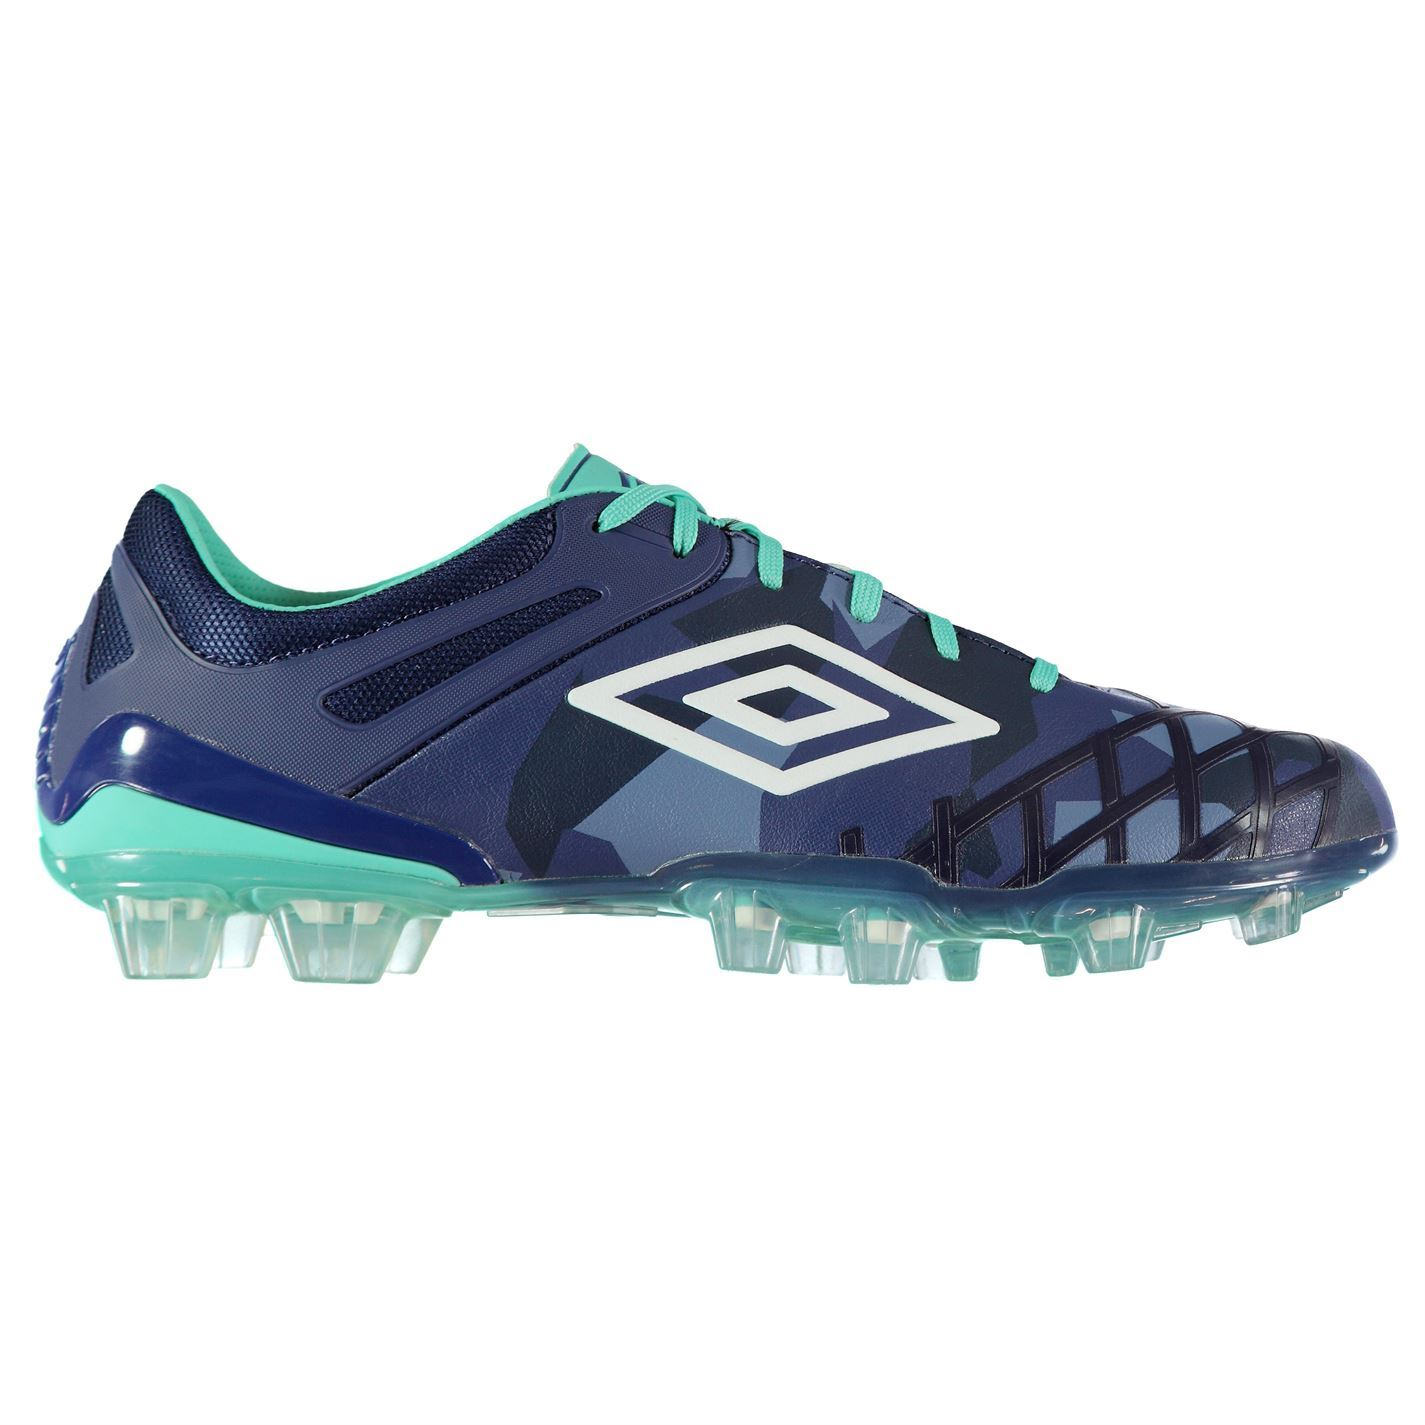 Umbro   Umbro Herren Gents UX 2.0 Pro HG Football Stiefel Schuhes Footwear Laces Fastened b22d83